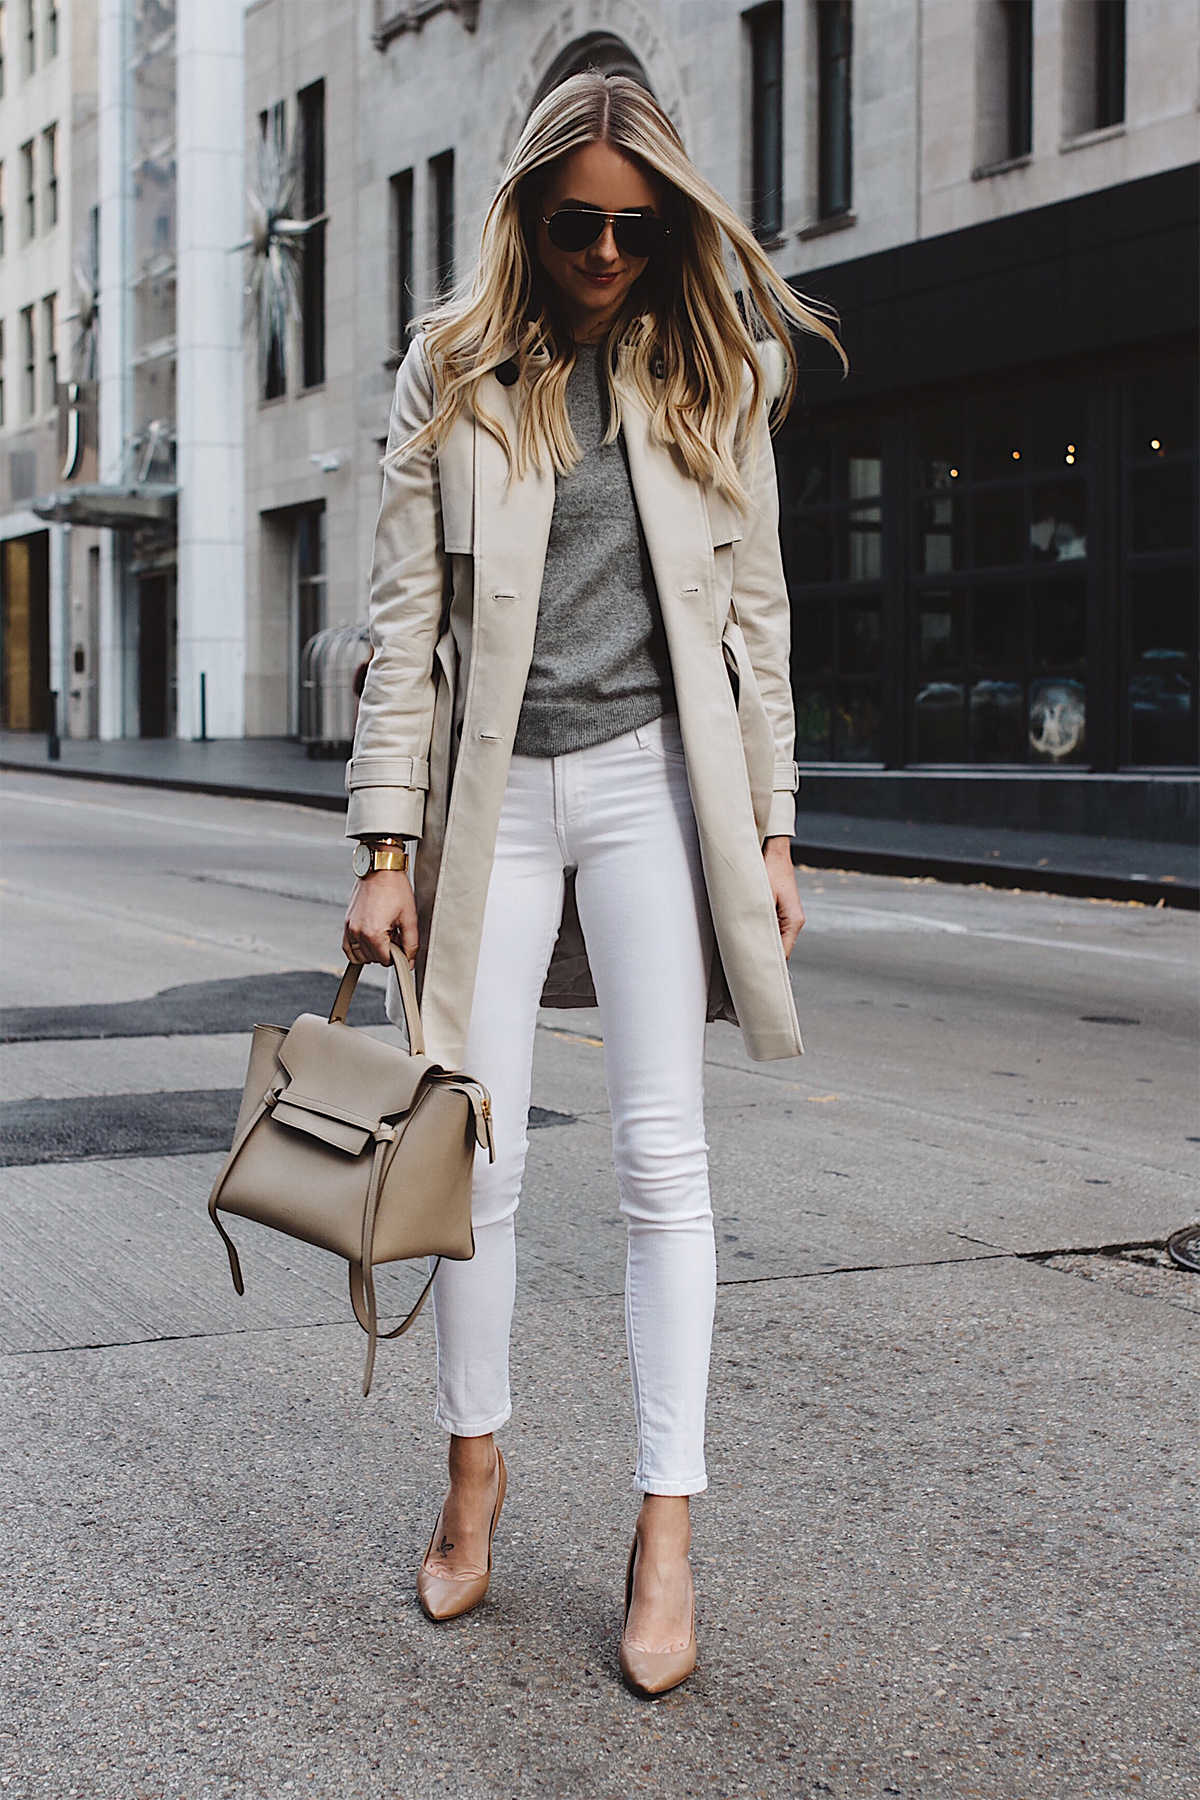 Fashion Jackson Club Monaco Trench Coat Grey Sweater White Skinny Jeans Celine Belt Bag Aviator Sunglasses Nude Pumps Fashion Jackson Dallas Blogger Fashion Blogger Street Sylte